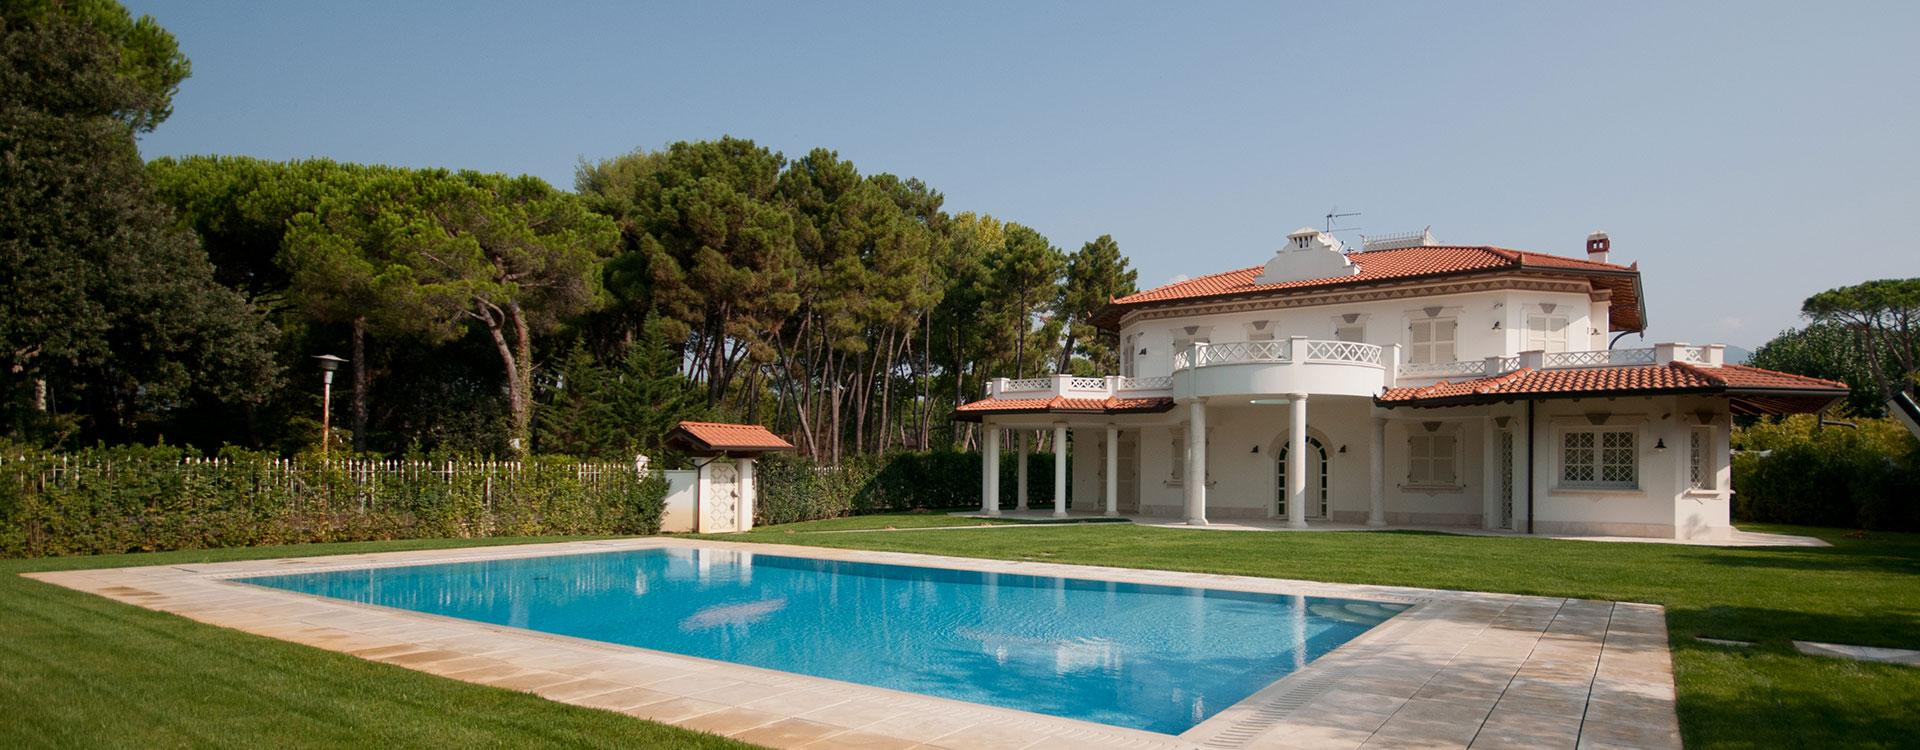 Villa with pool near the beach